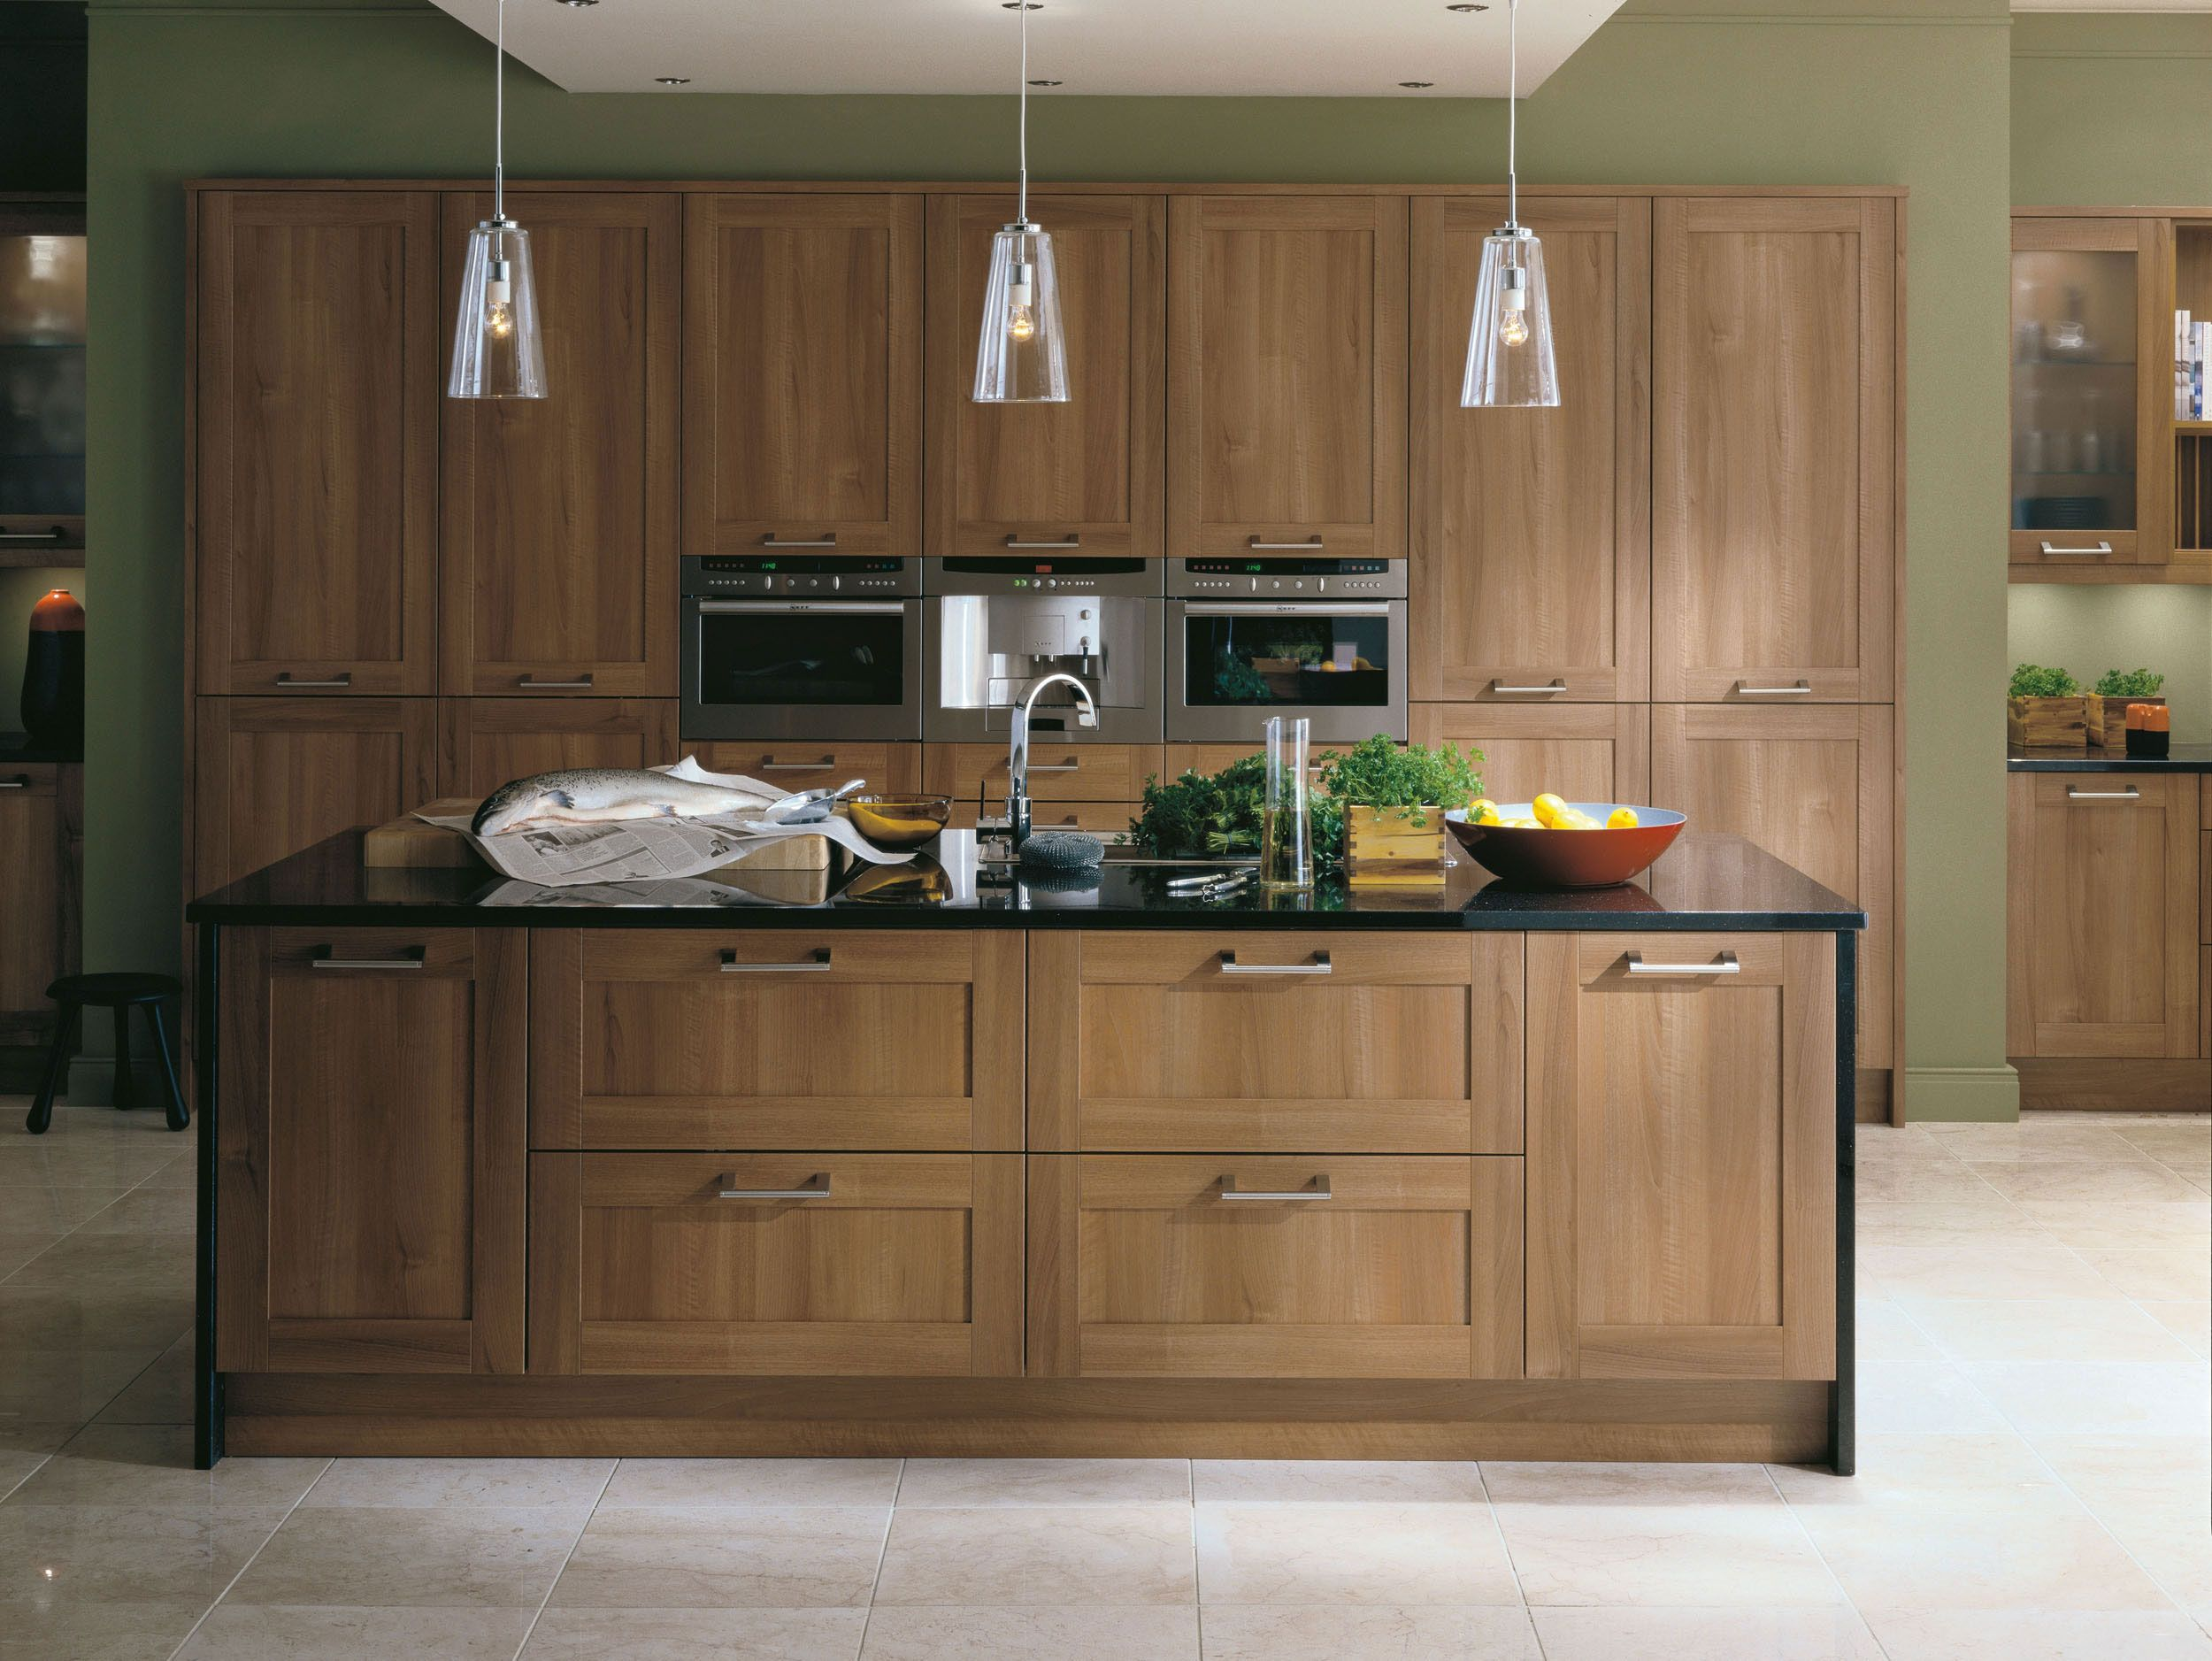 Image of Walnut Kitchen Cabinet Ideas